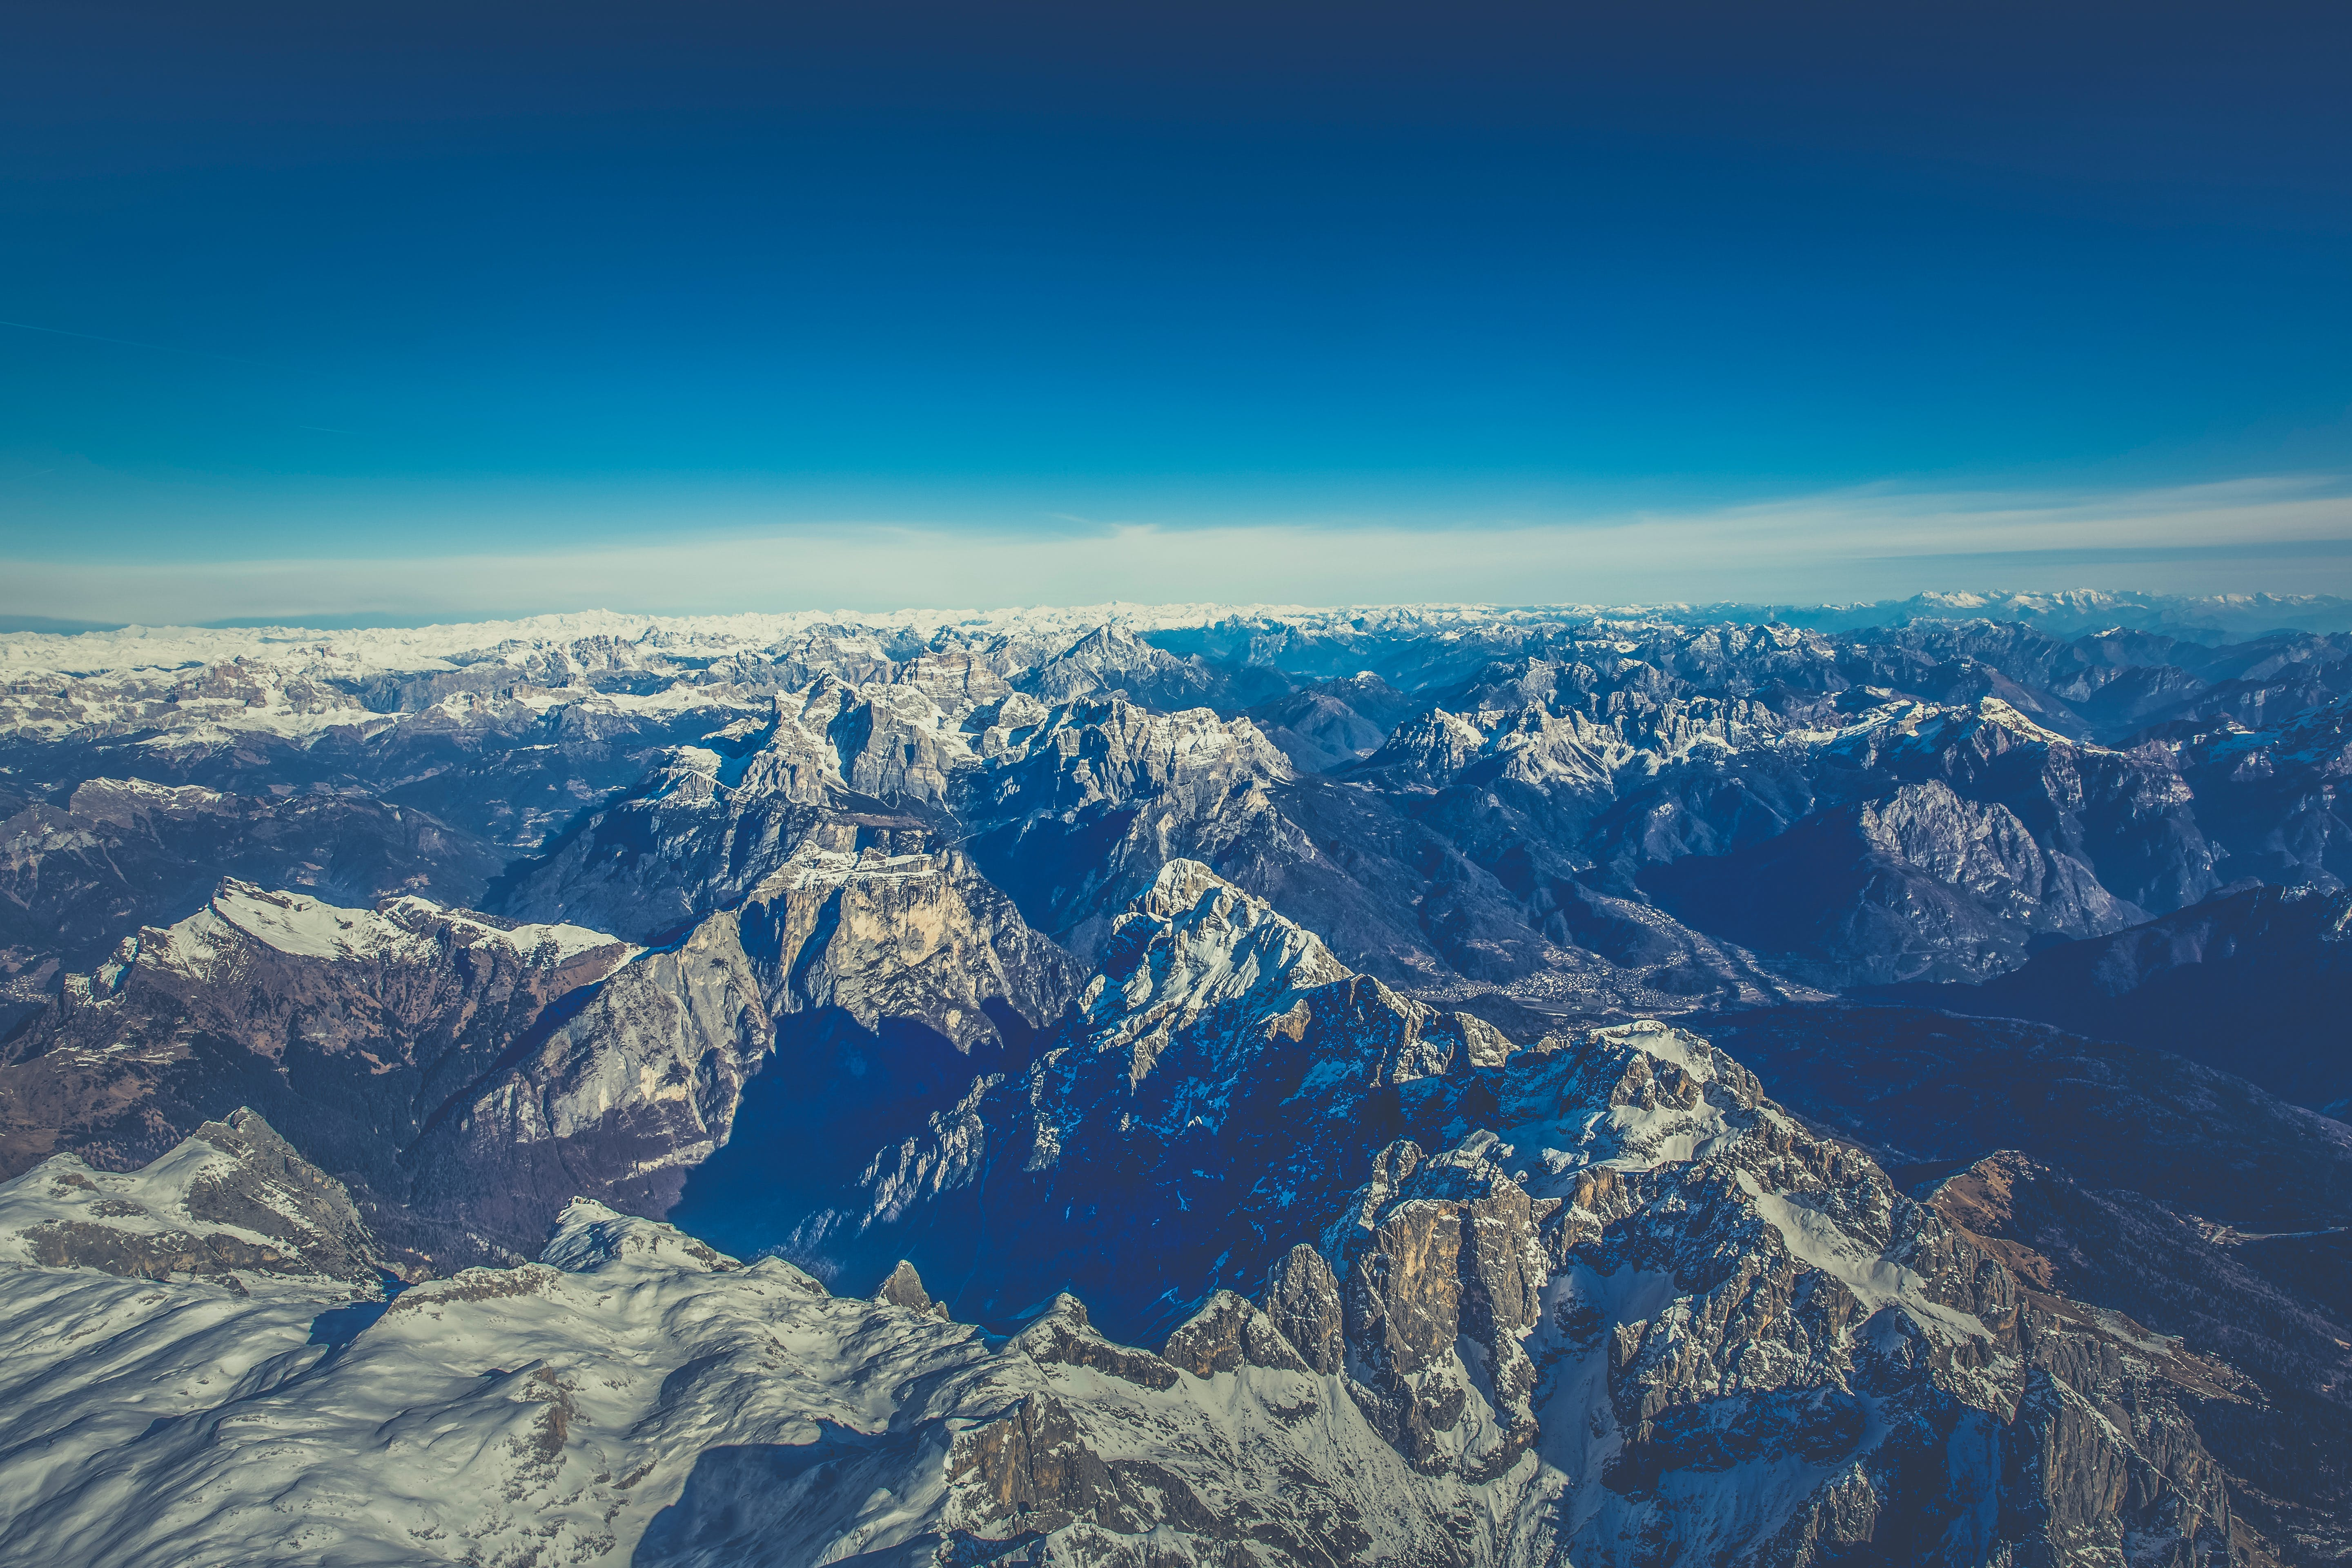 Aerial View of Mountain Under Blue Sky during Day Time